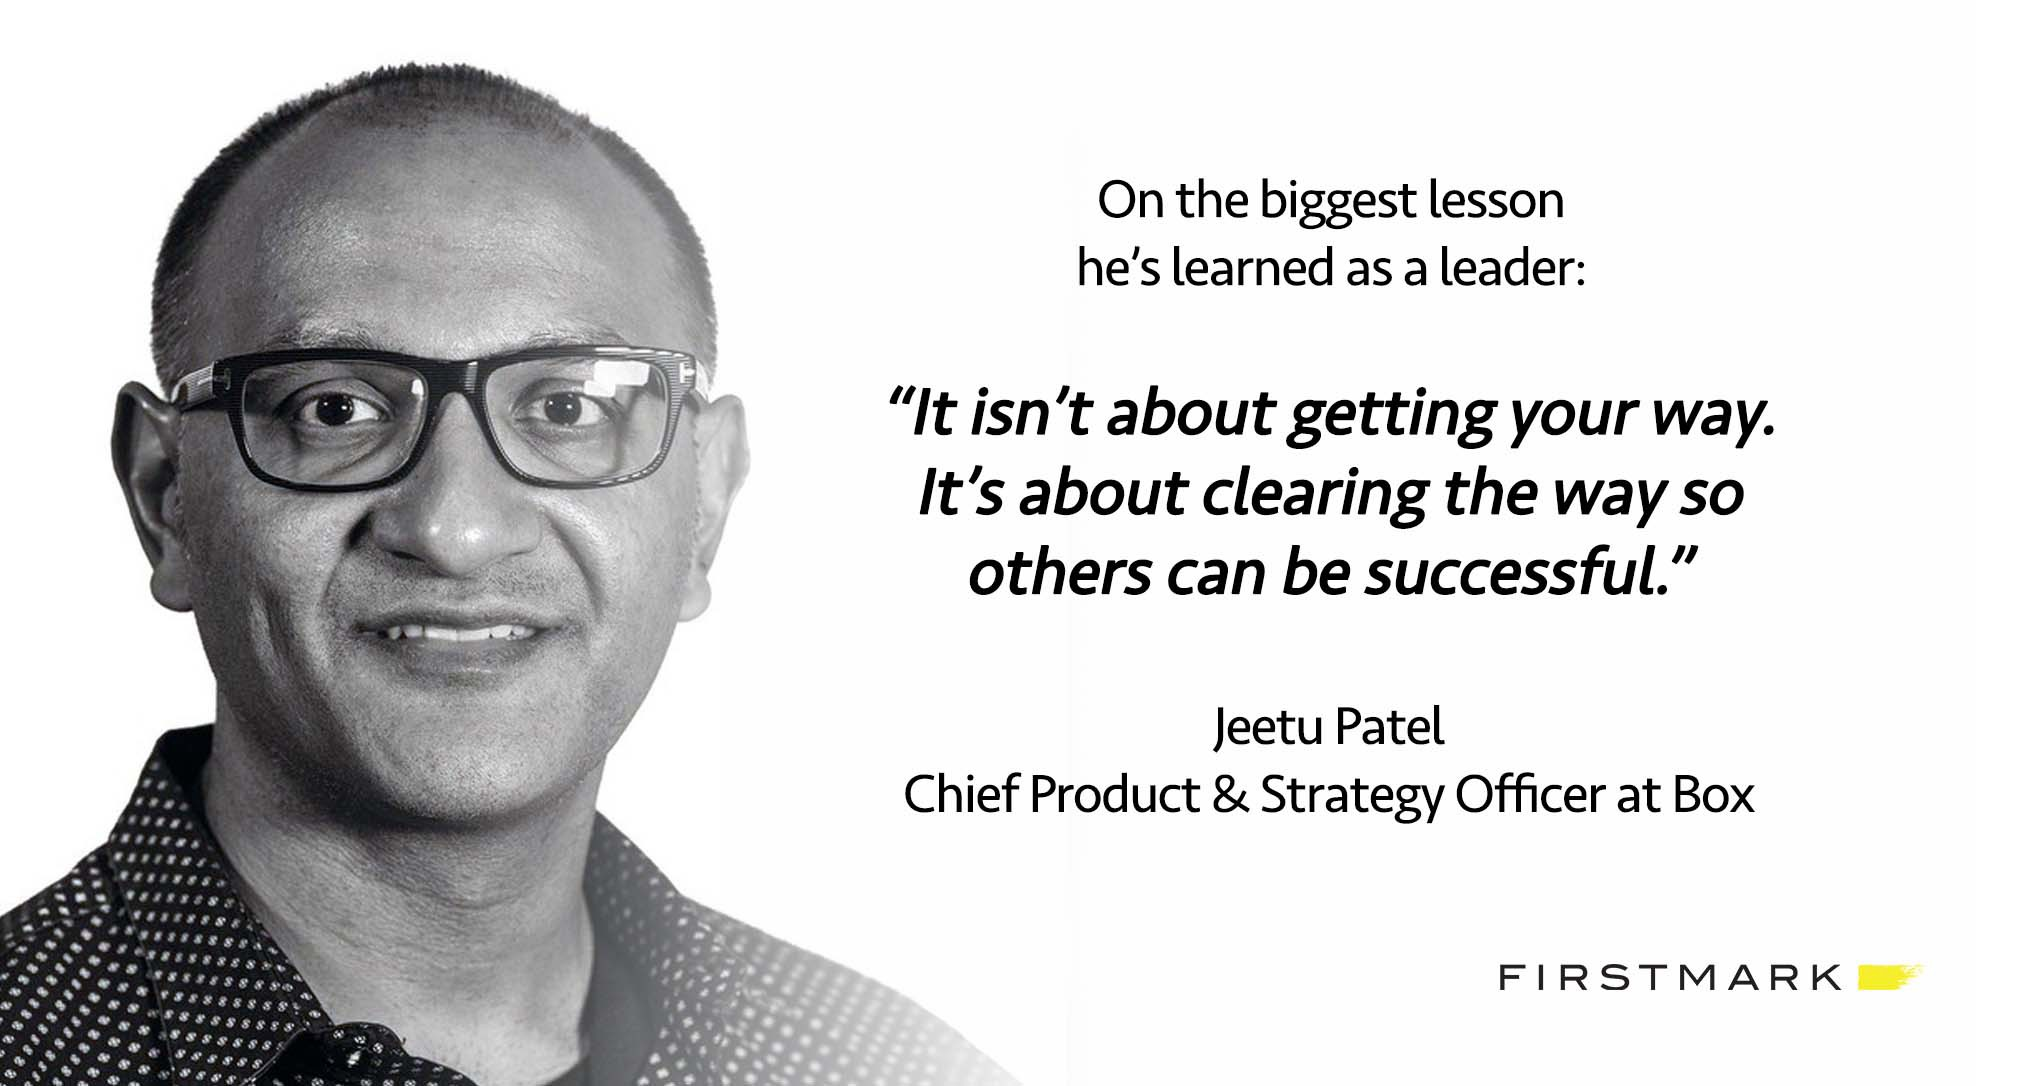 /boxs-cpo-jeetu-patel-on-getting-out-of-the-way-lessons-on-leadership-7903411a3831 feature image